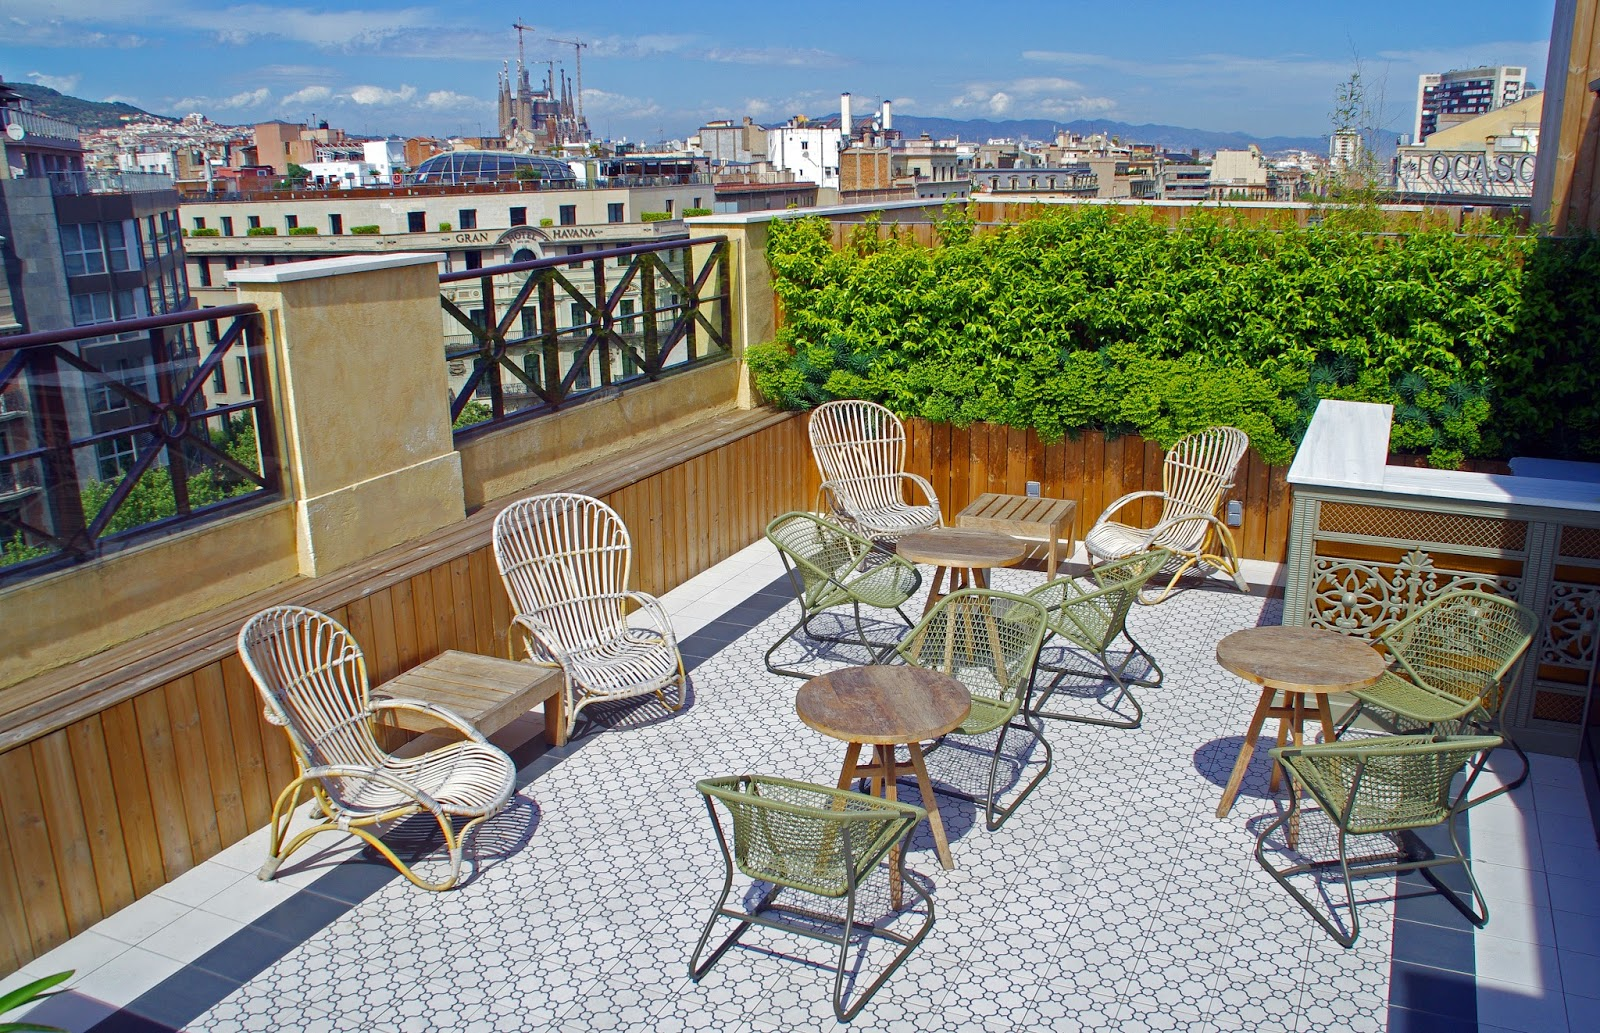 Cotton House Hotel Barcelona Rooftop